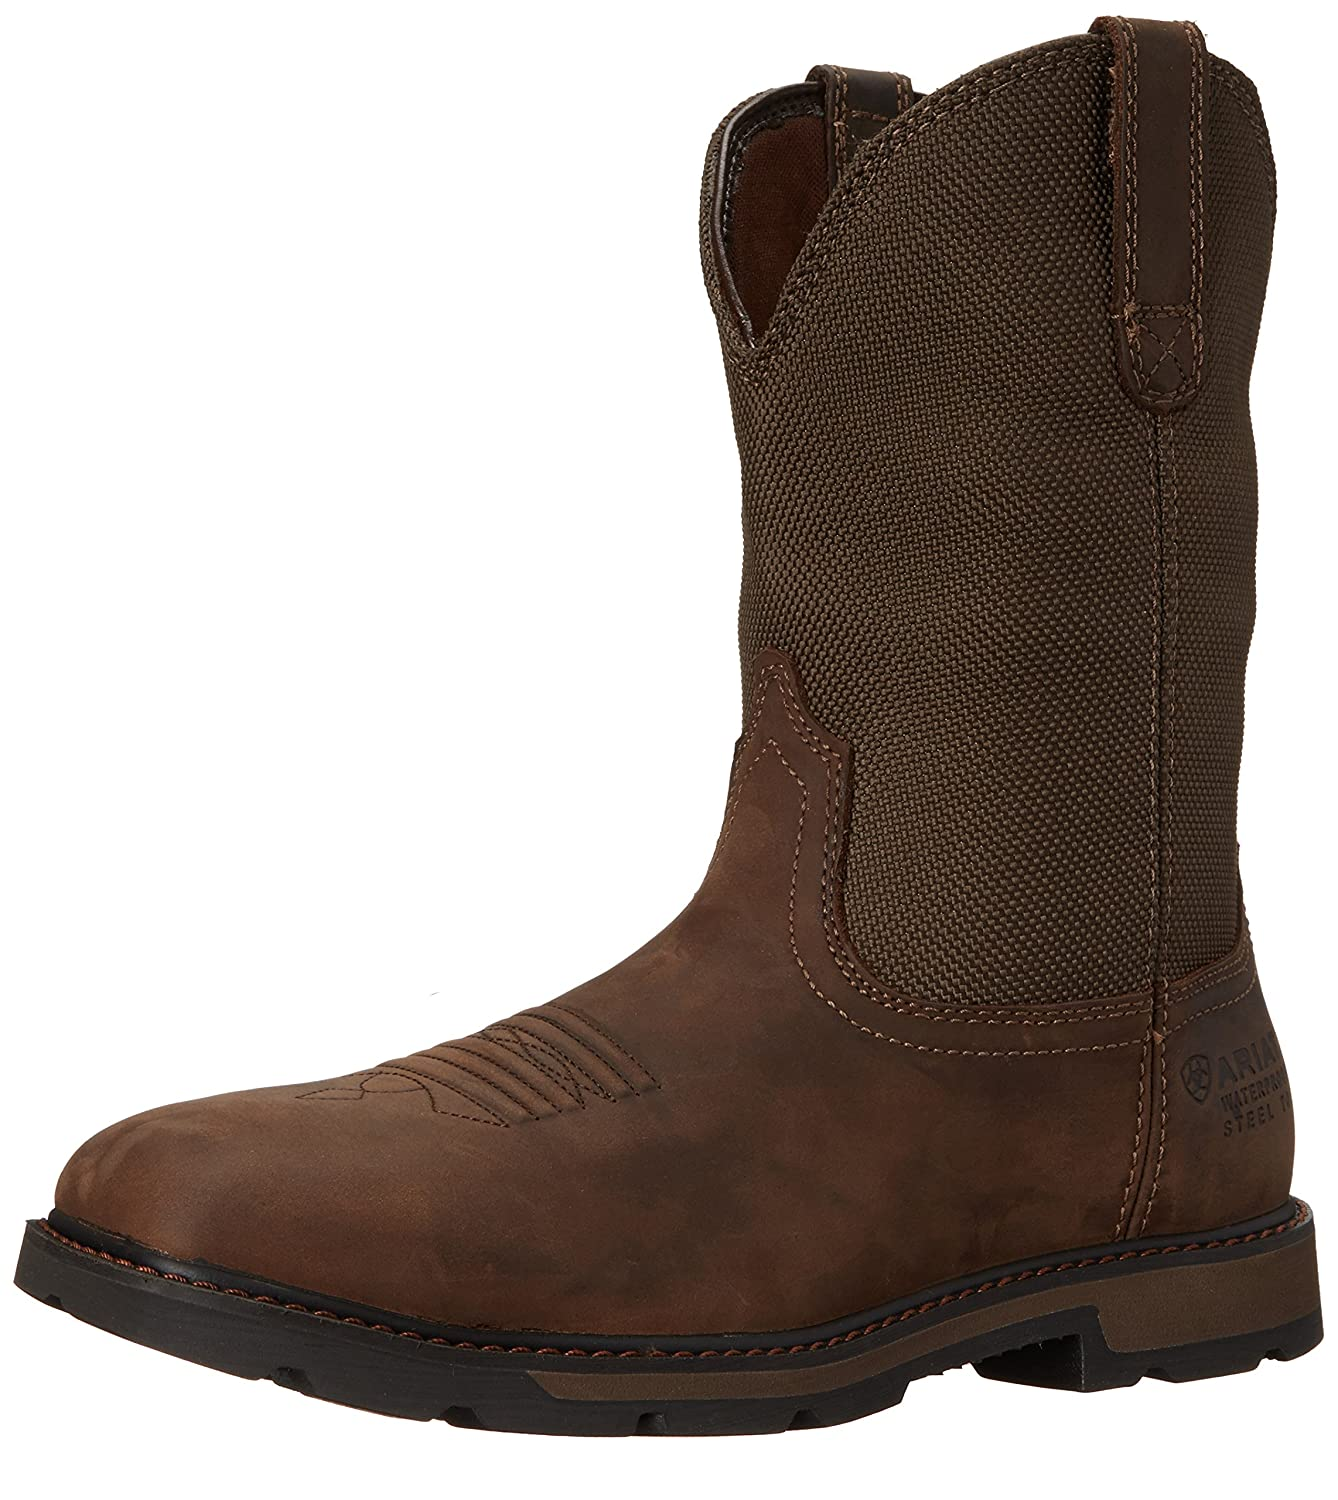 Ariat メンズ B00NVM69LI 8.5 D(M) US|Palm Brown/Ballistic Brown Palm Brown/Ballistic Brown 8.5 D(M) US